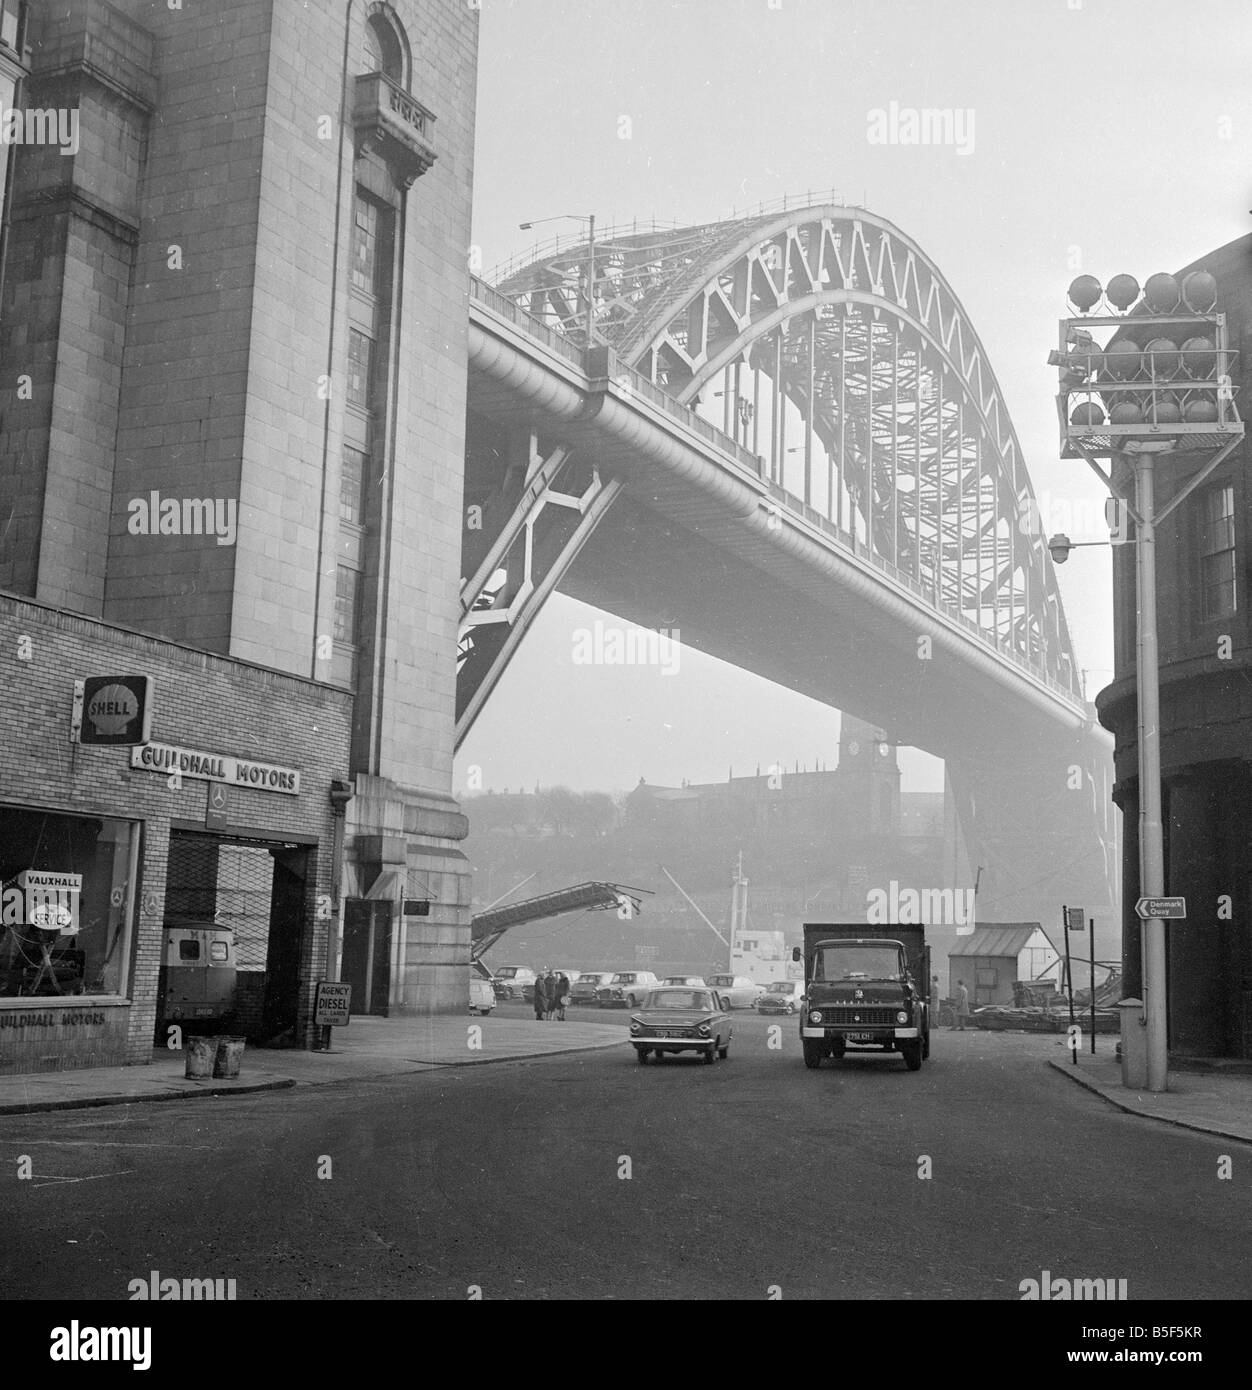 The Tyne Bridge spanning the River Tyne, North East England, linking Newcastle upon Tyne with Gateshead. It was Stock Photo